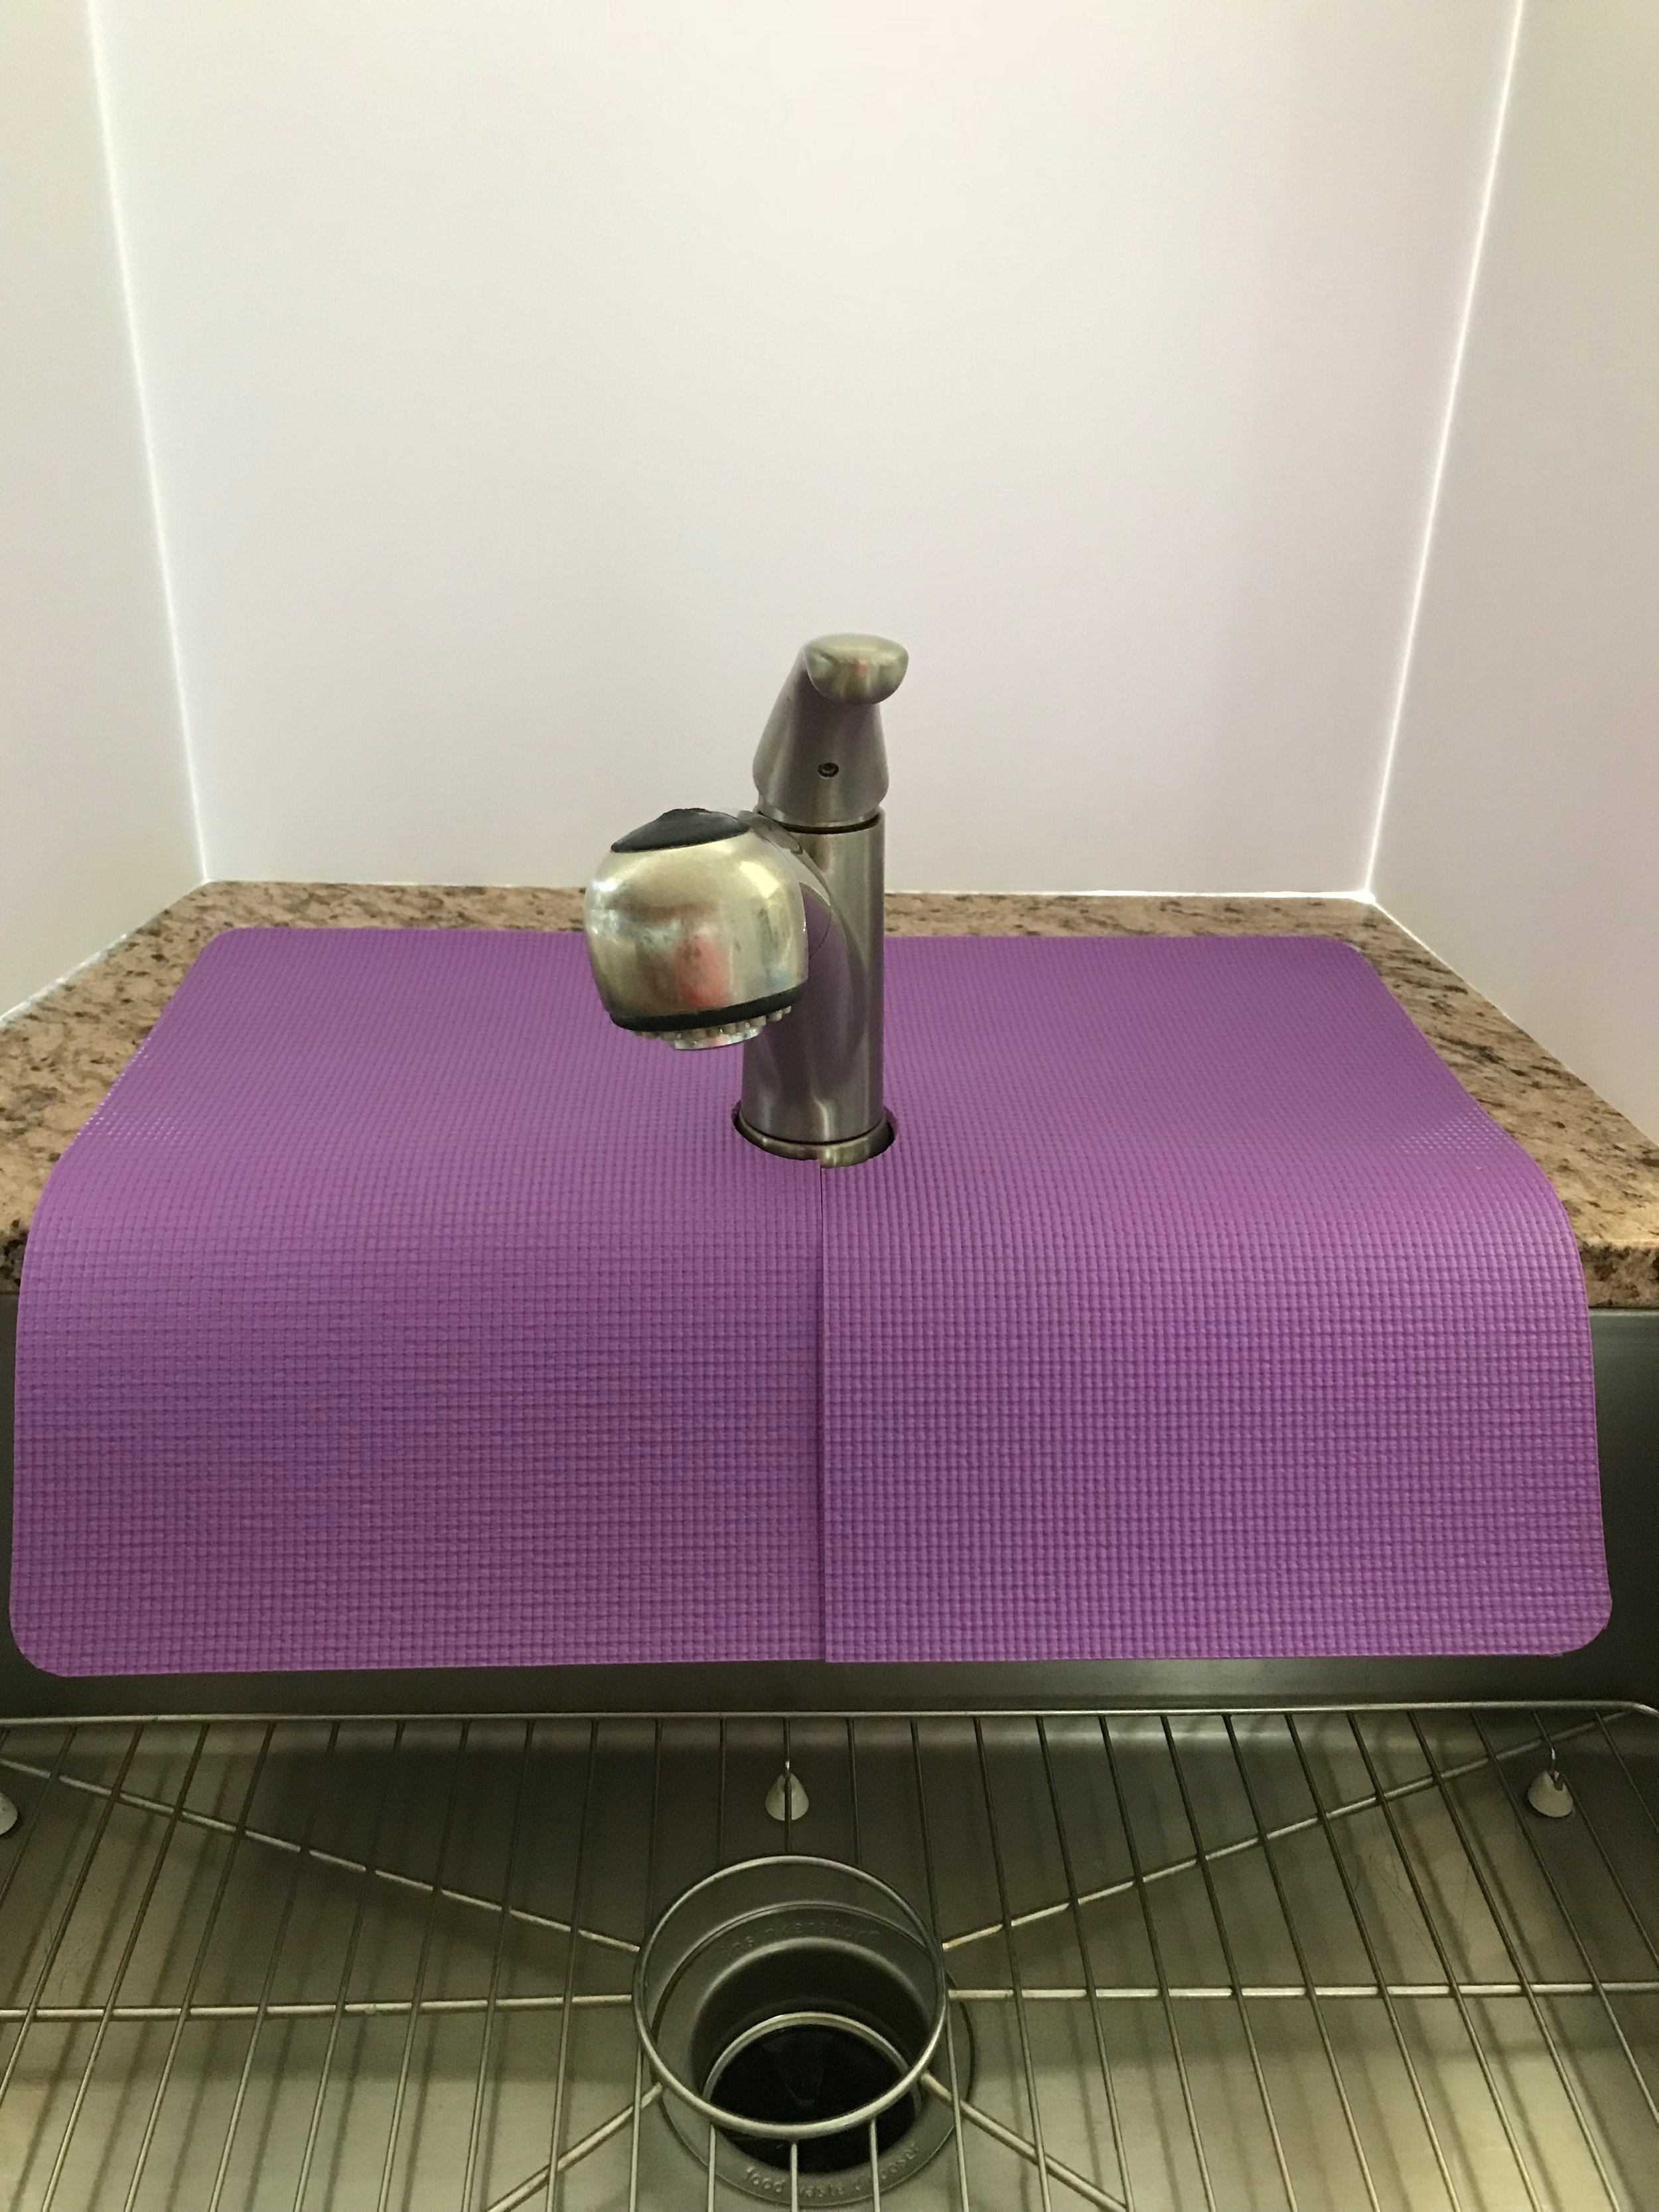 Purple Kitchen Sink Faucet Splash Guard, guards from sink edge from  chipping, water damage and water splashes, 17 in width x 23 in length,  TM(4), ...